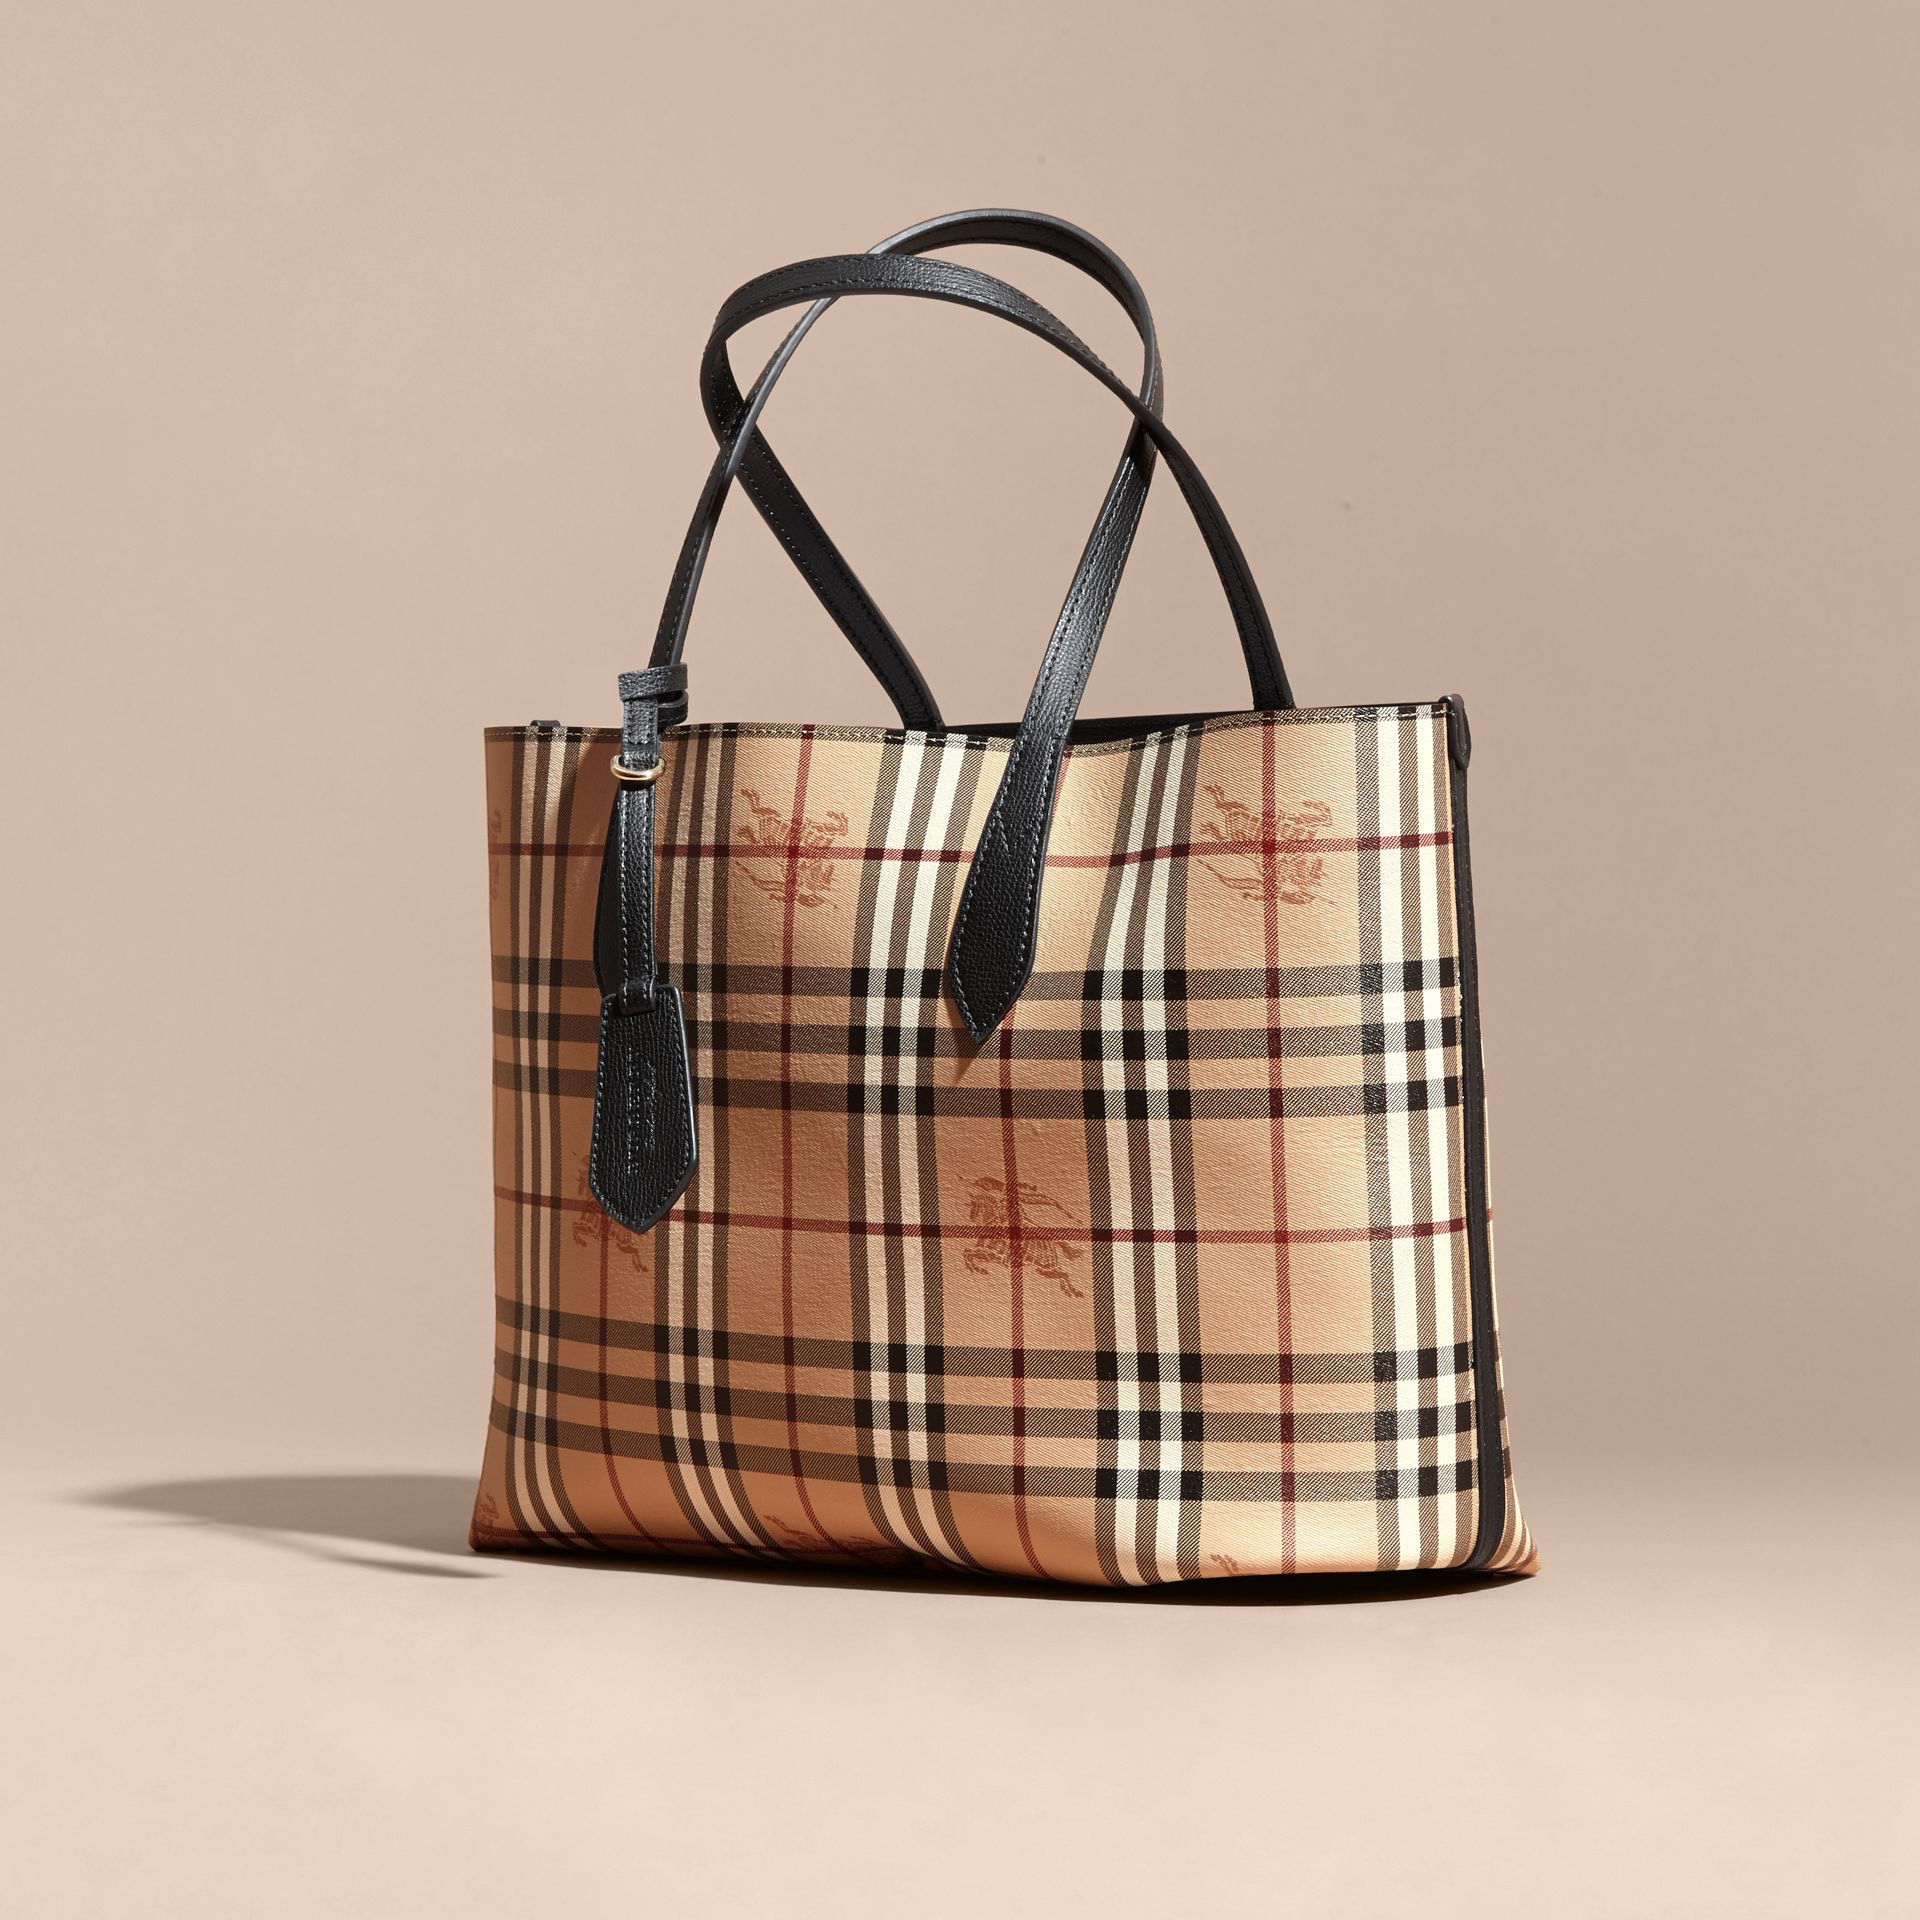 The Medium Reversible Tote in Haymarket Check and Leather in Black - Women | Burberry Canada - gallery image 8